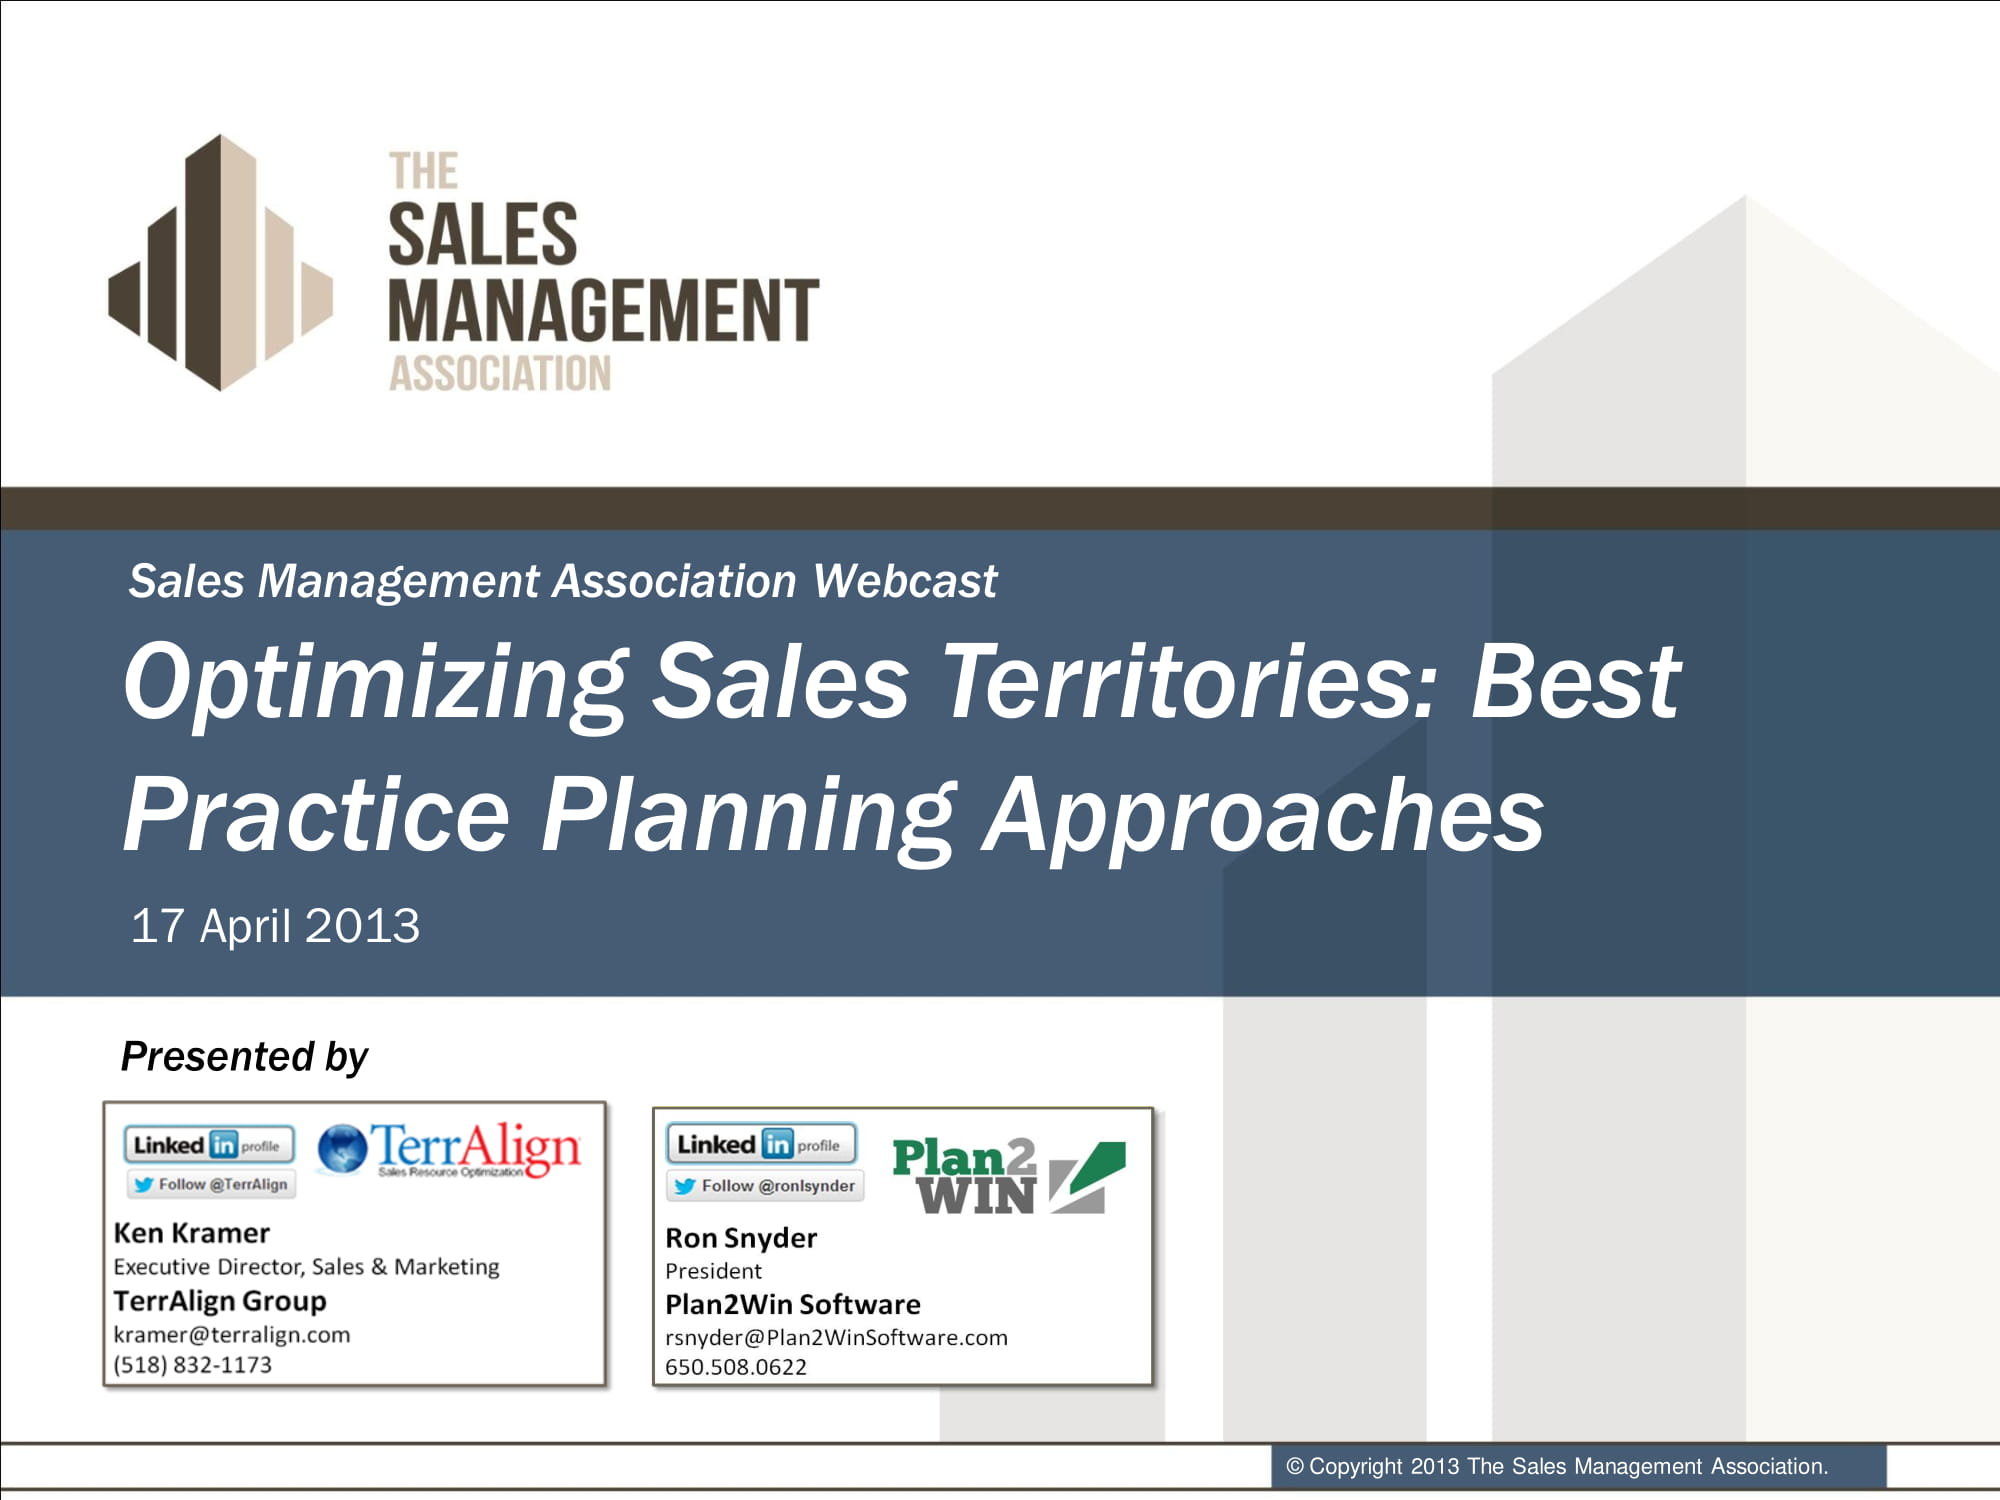 optimizing sales territories best practice planning approaches example 01